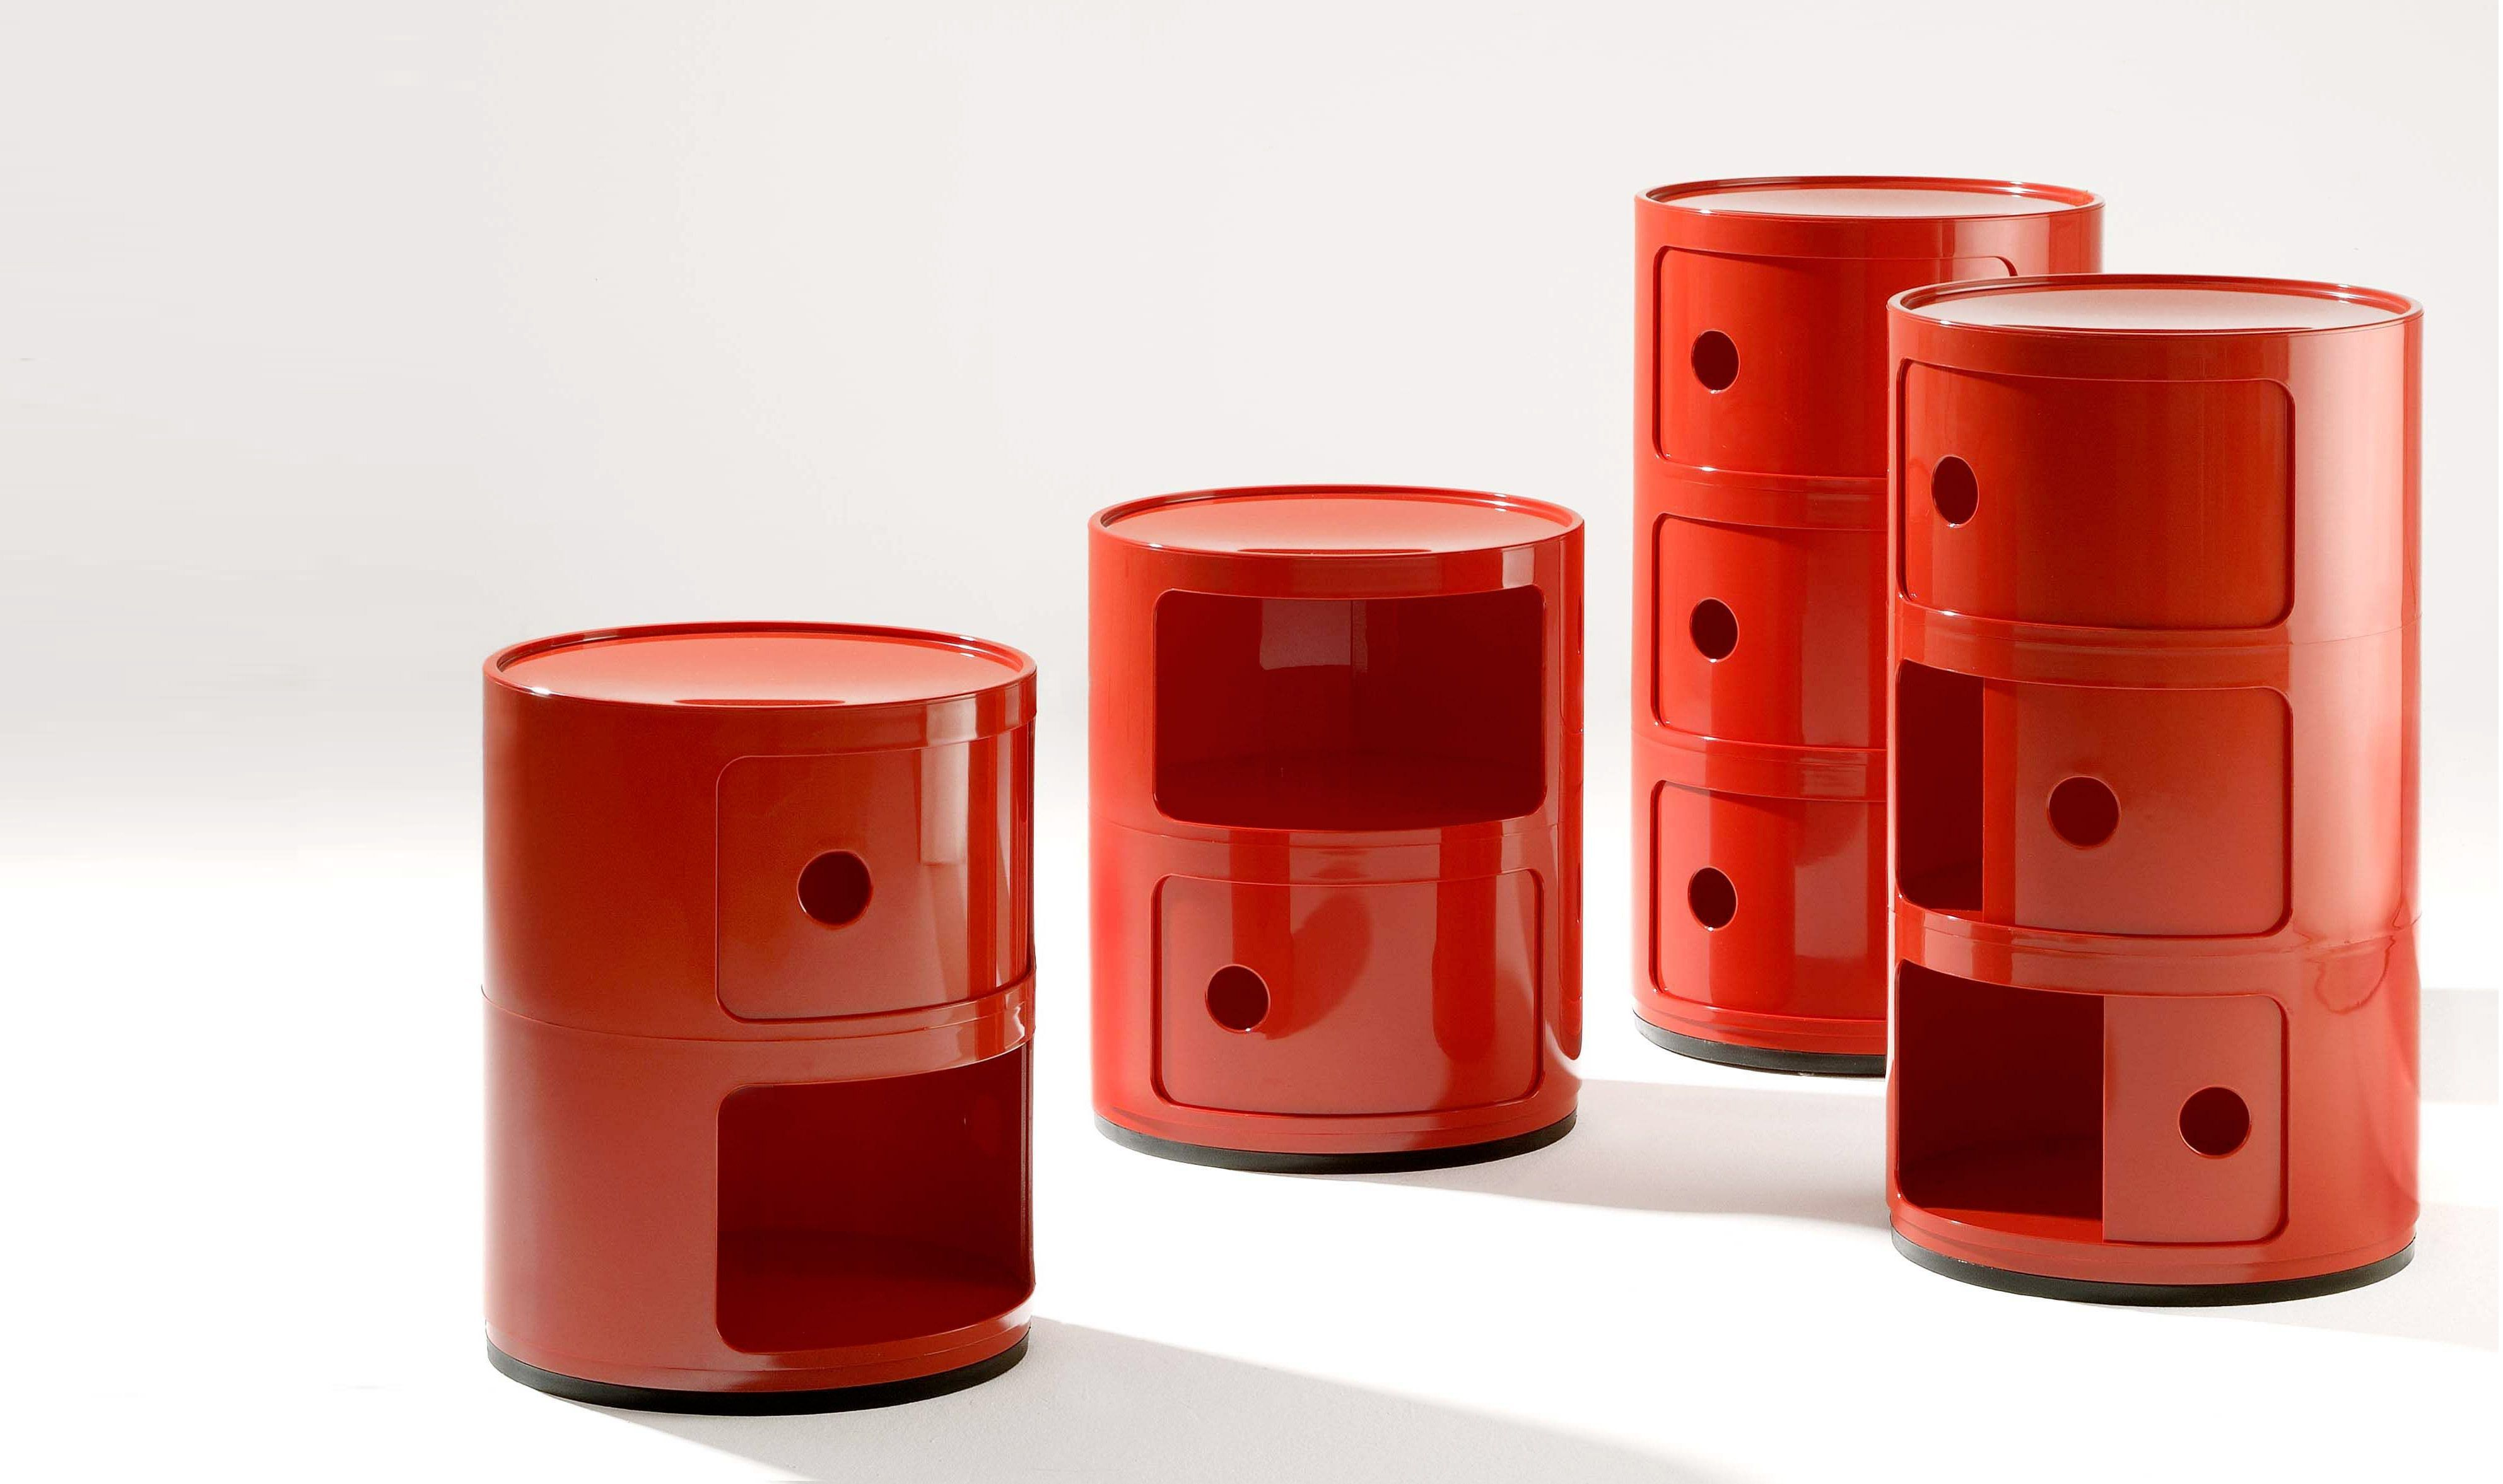 Sedia Kartell Anna Castelli Ferrieri.Kartell S Componibile An Icon Of Design